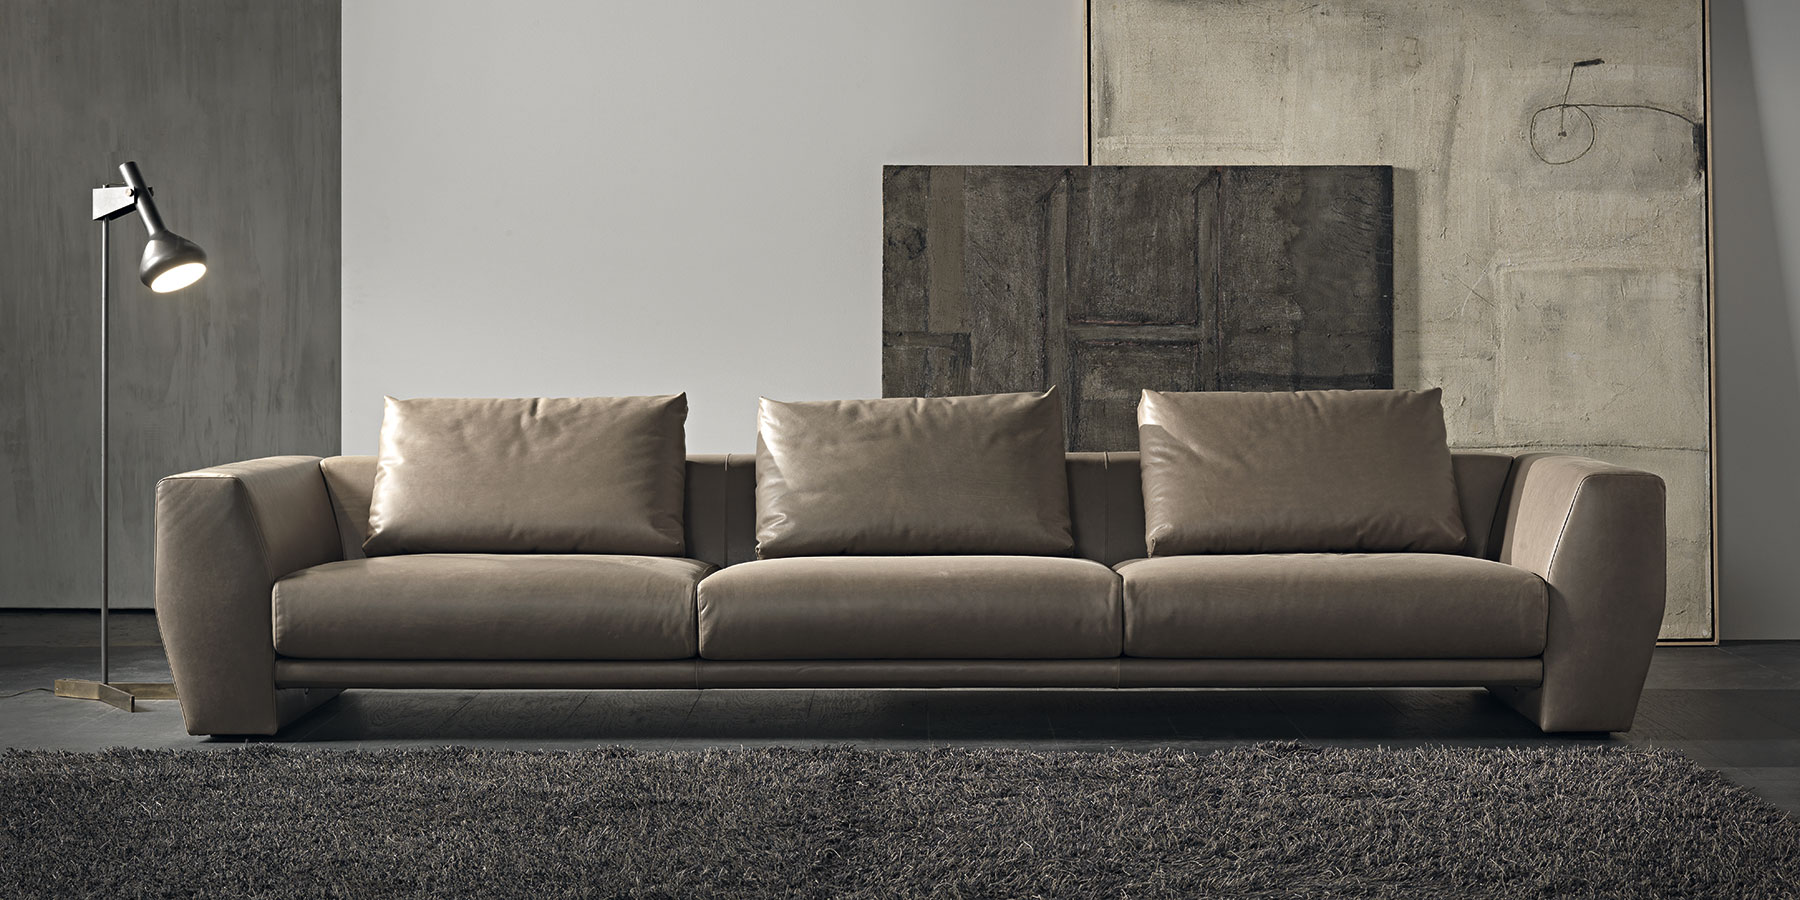 Italian High End Hyper Sofa Italian Designer Luxury